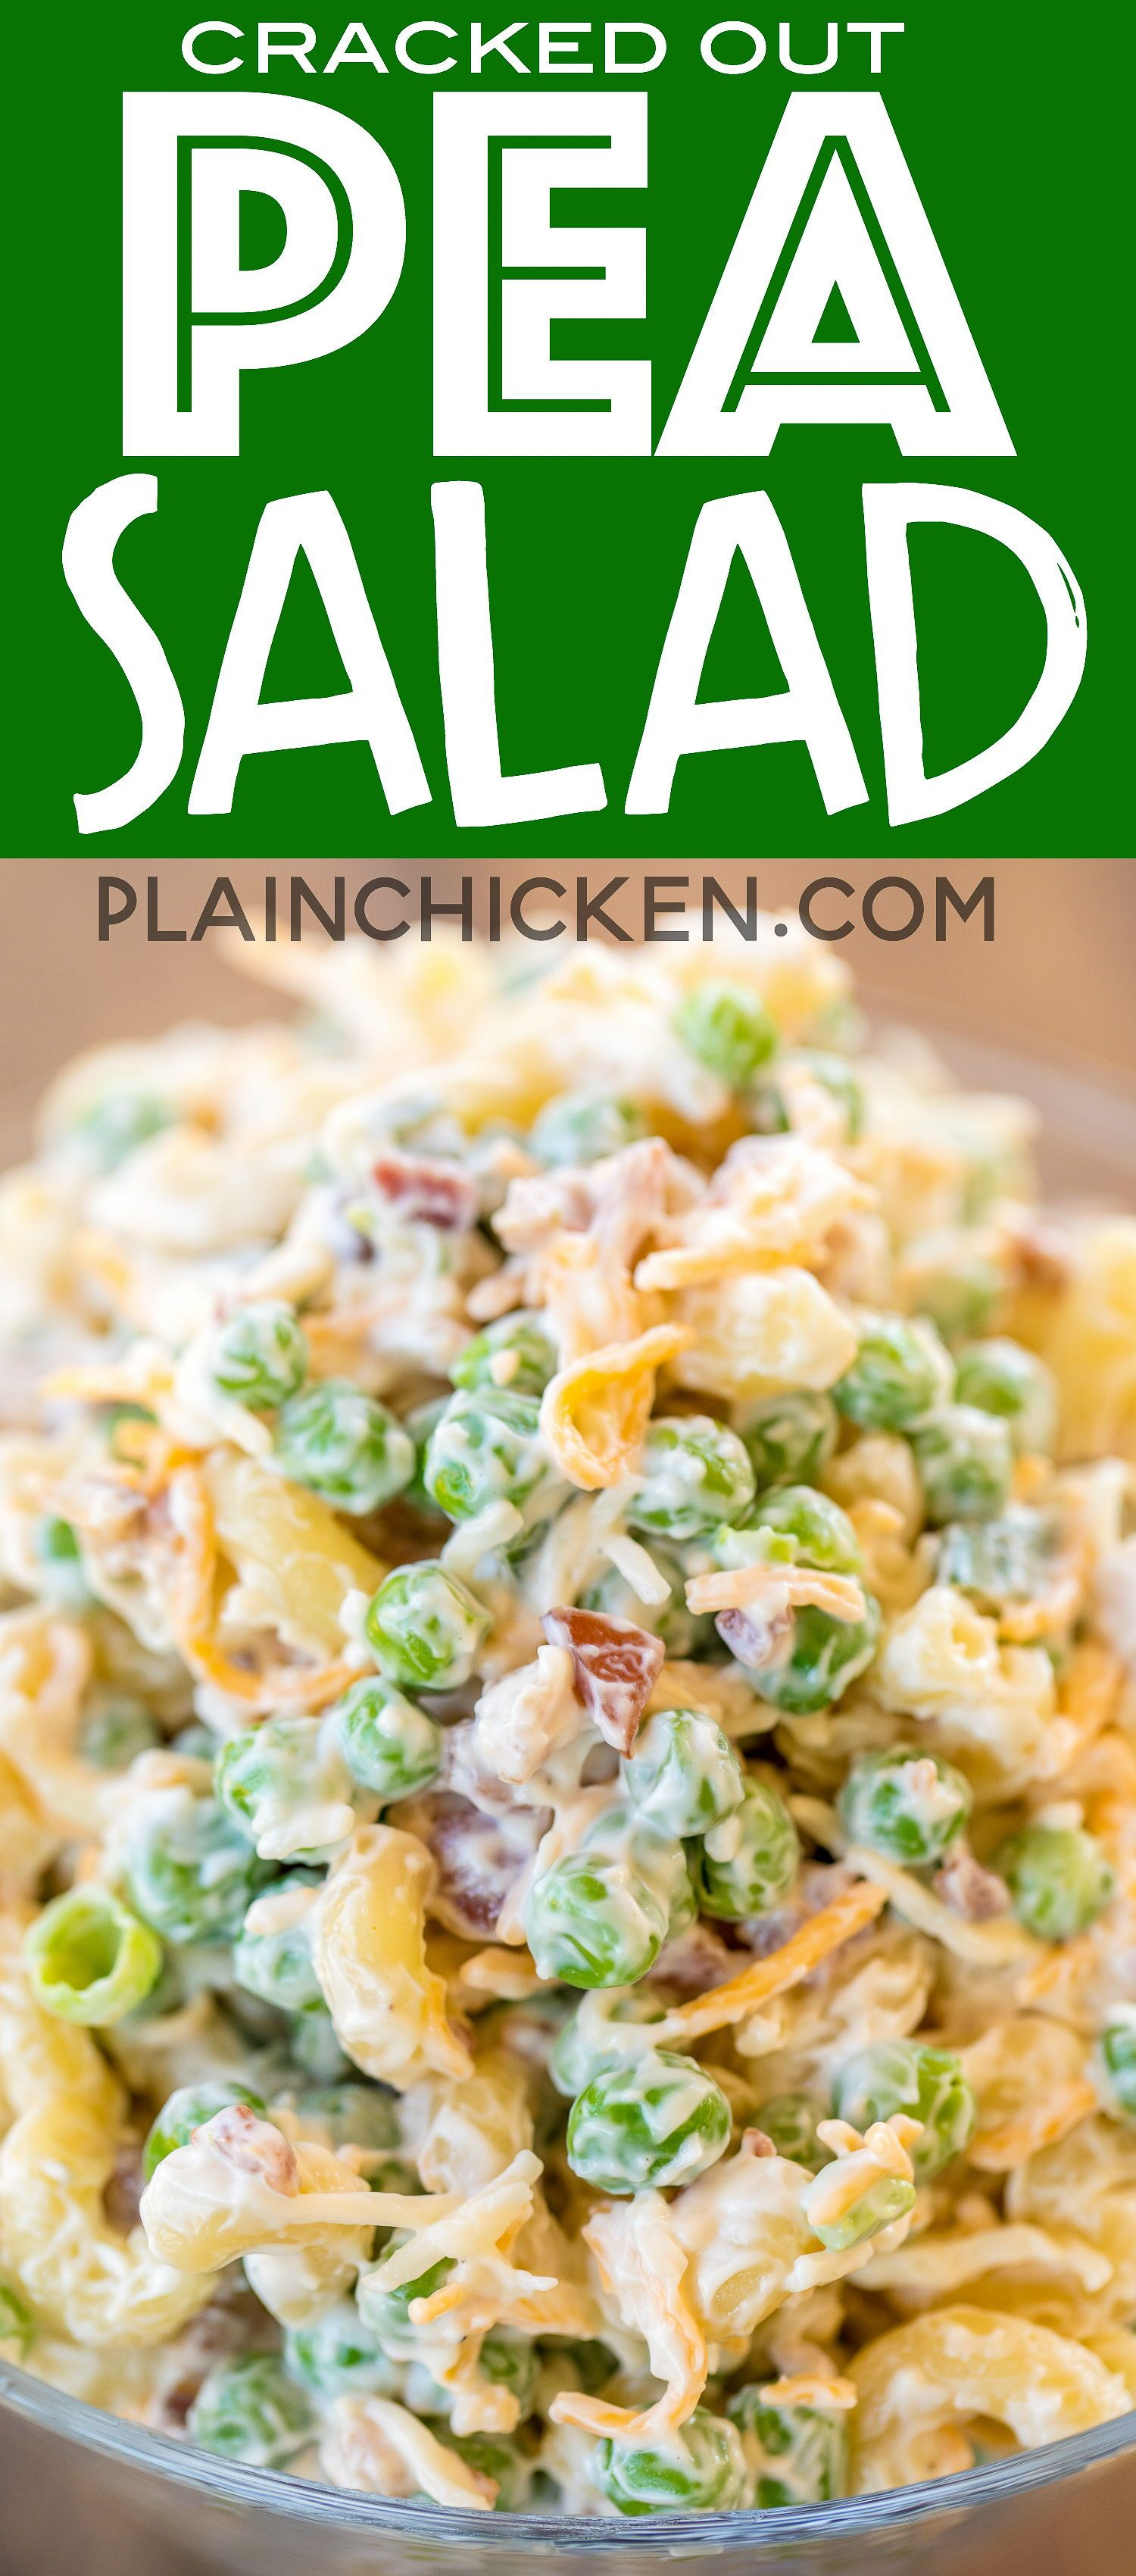 Cracked Out Pea Salad Macaroni And Green Peas Tossed In